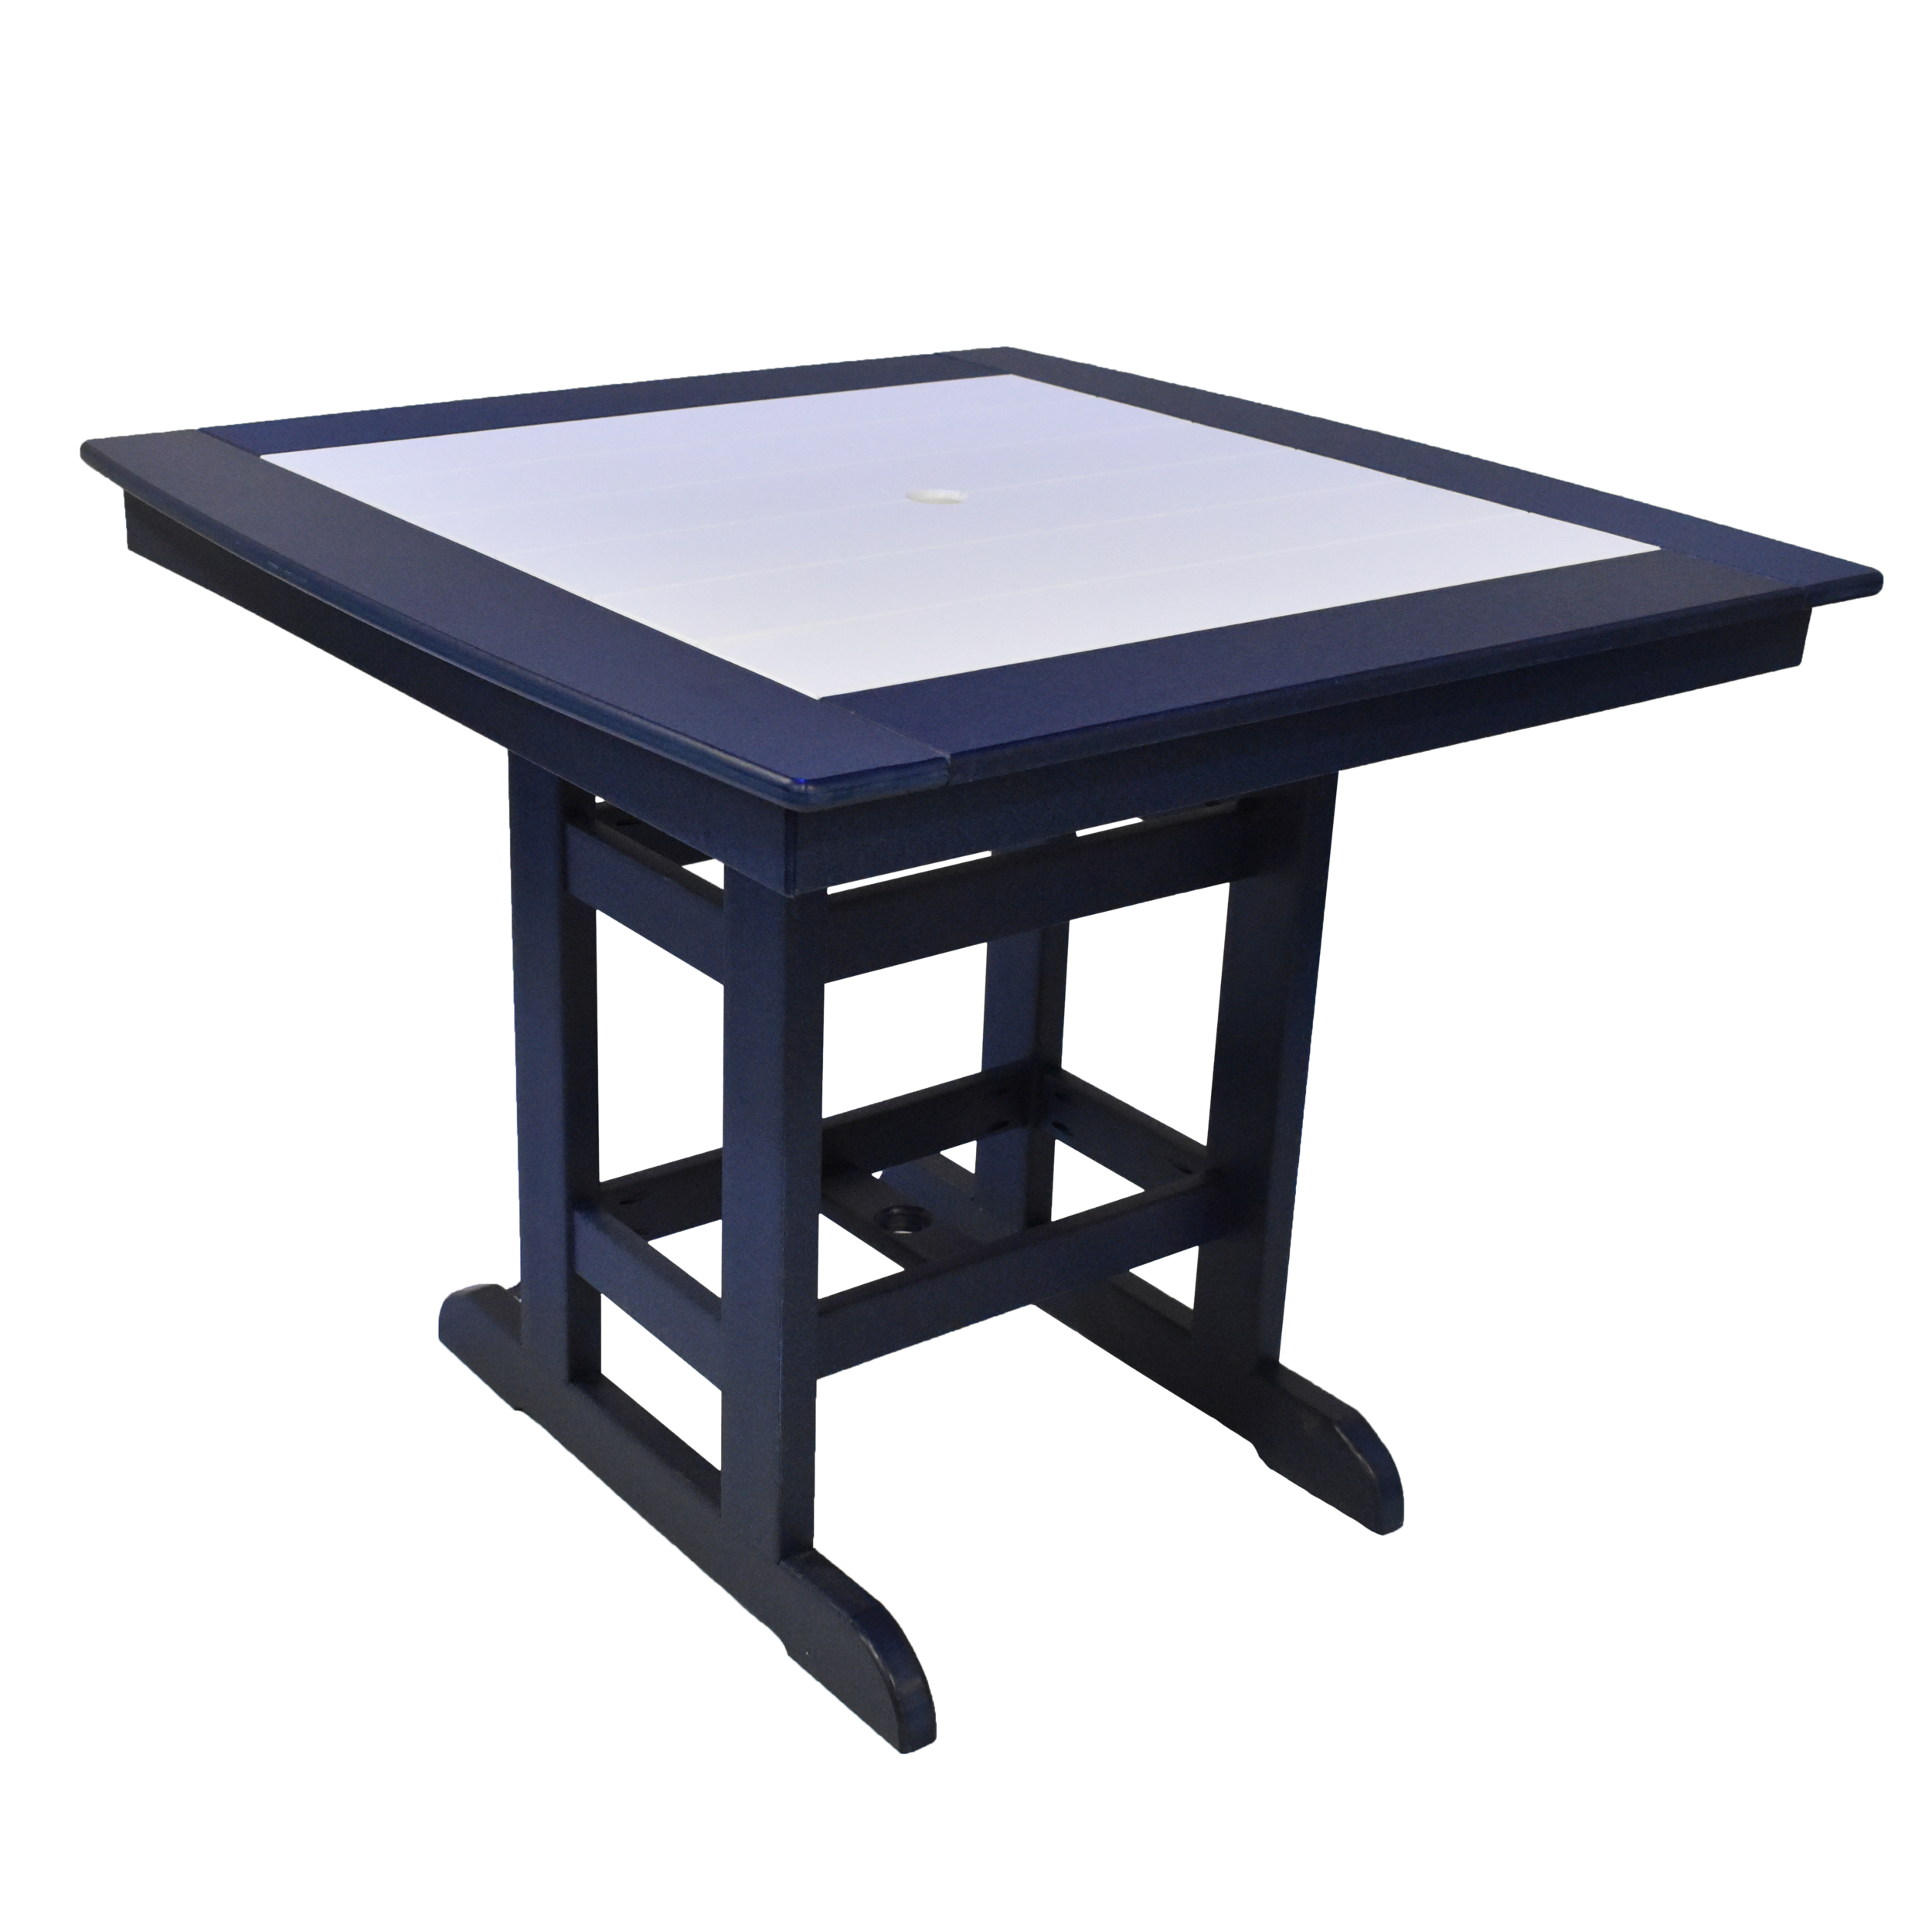 44x44 Cafe Table (W/Border)